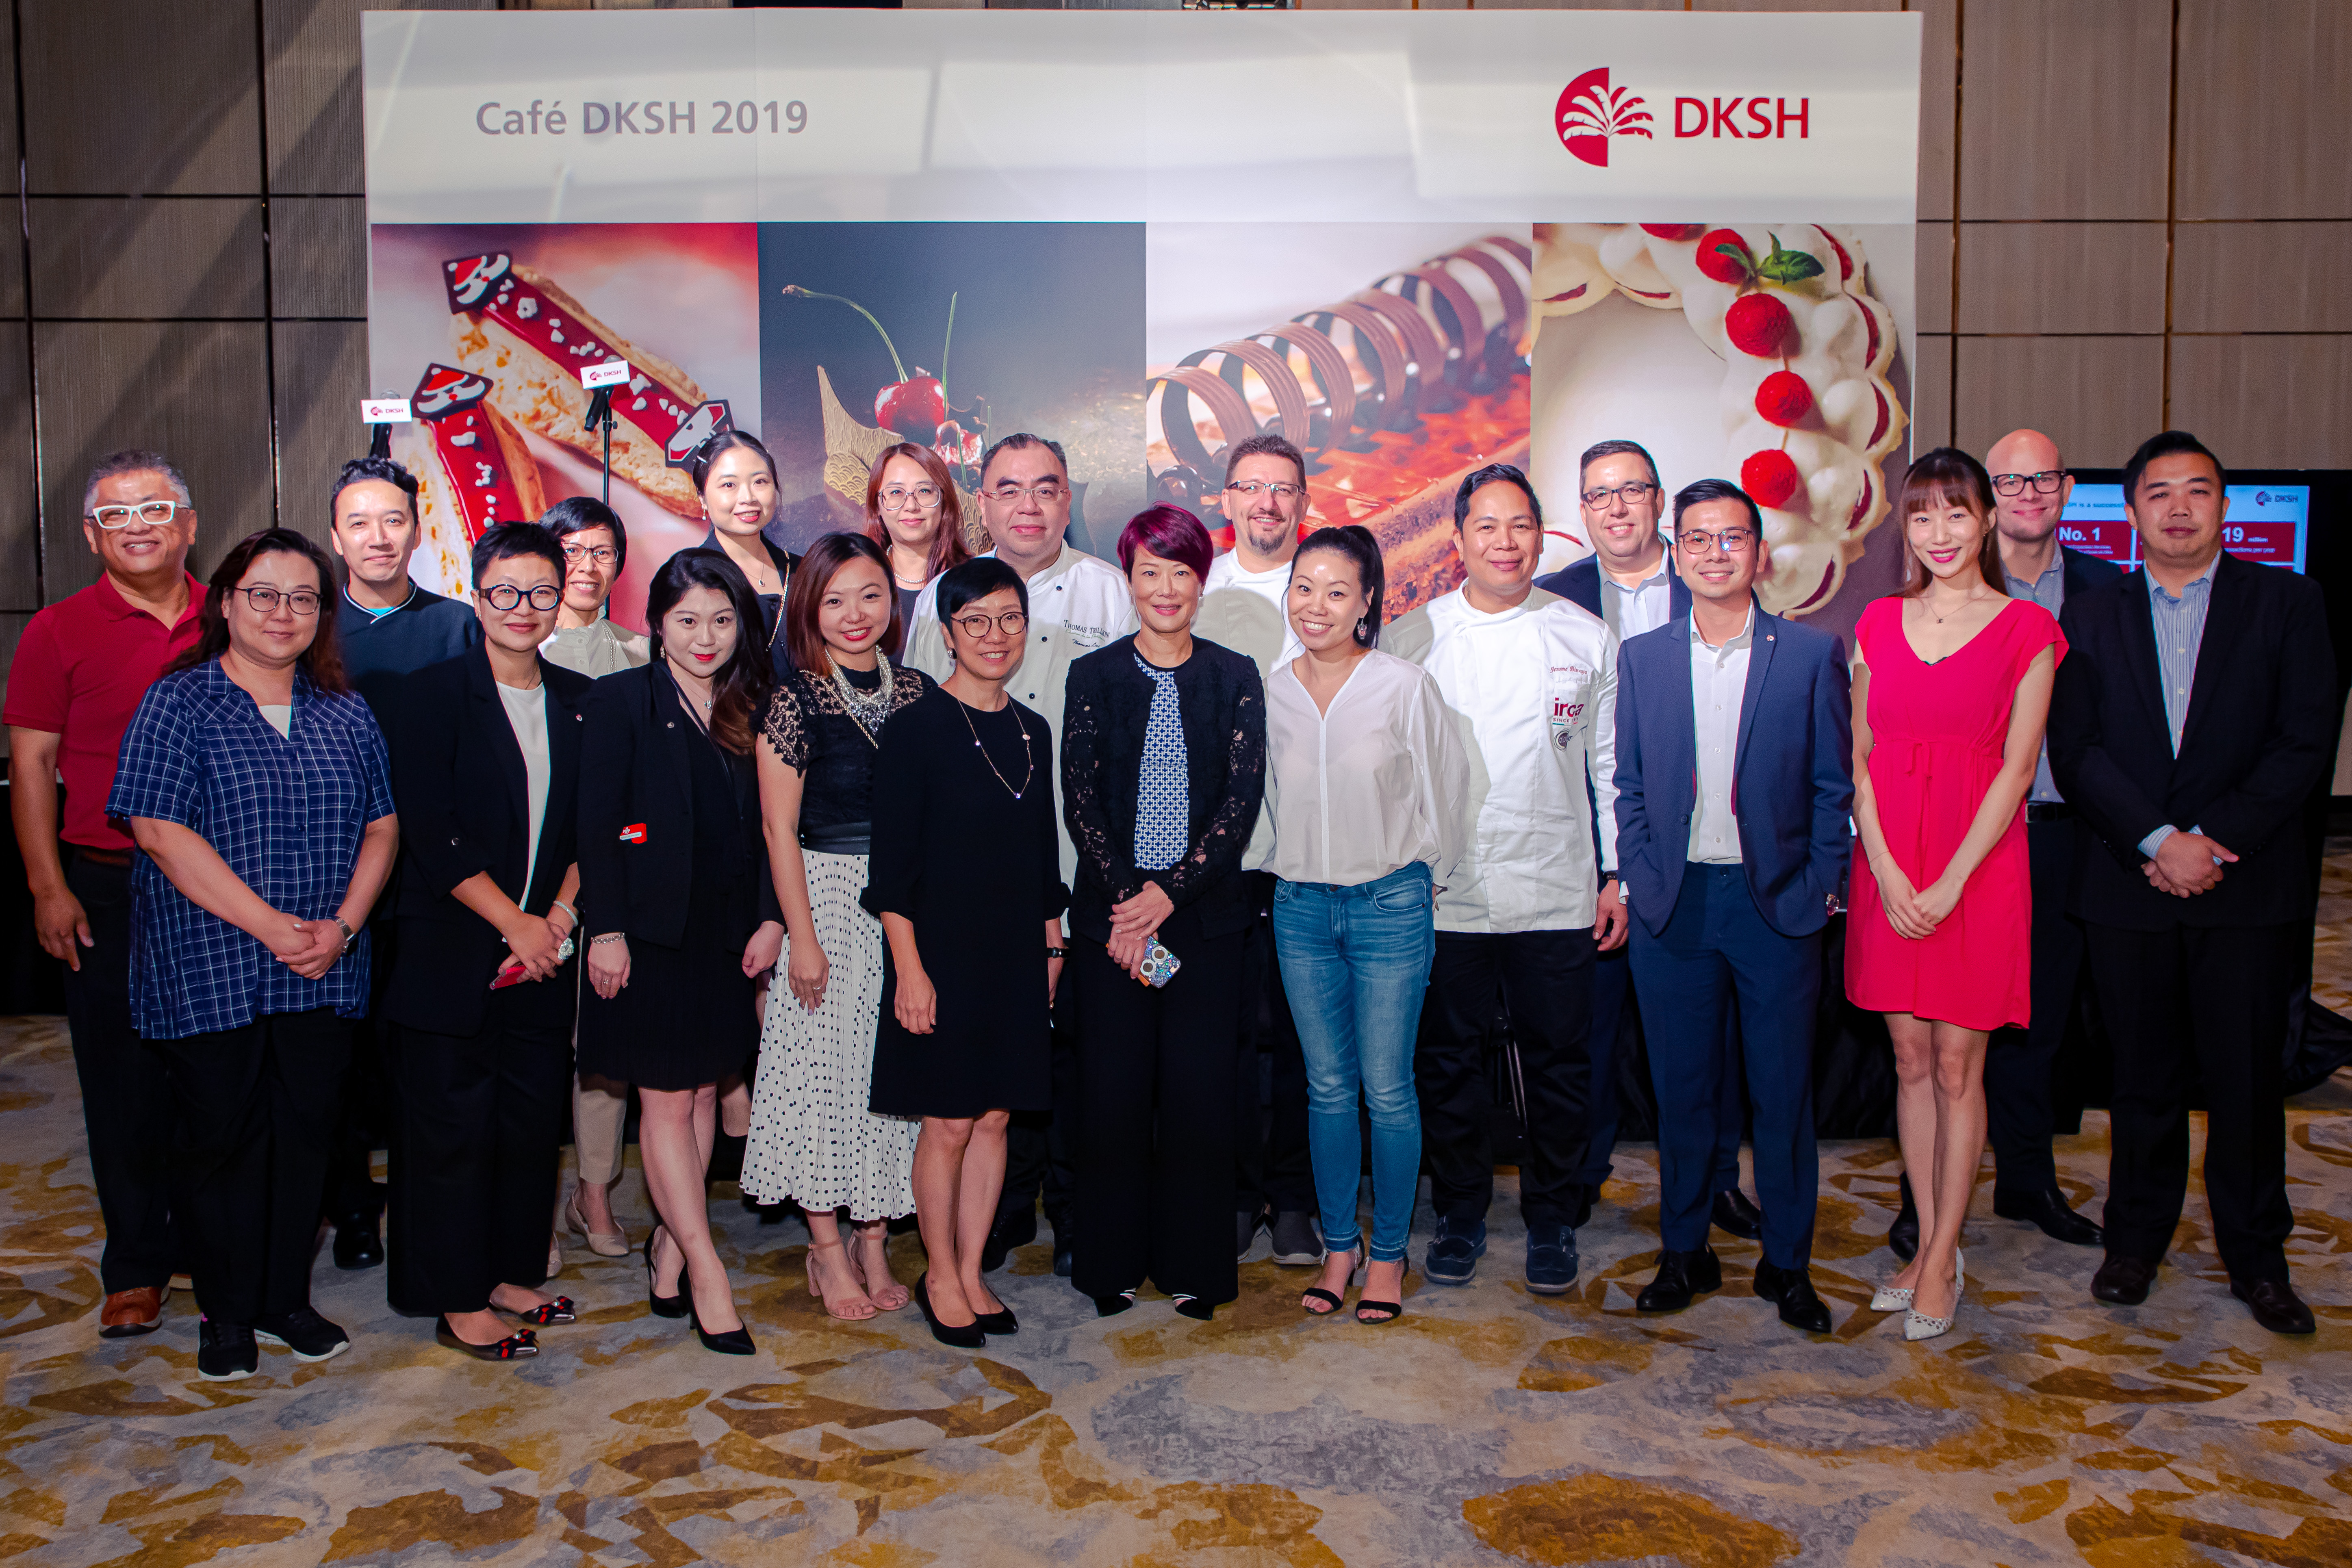 Café DKSH 2019 stands out with eight new endorsements